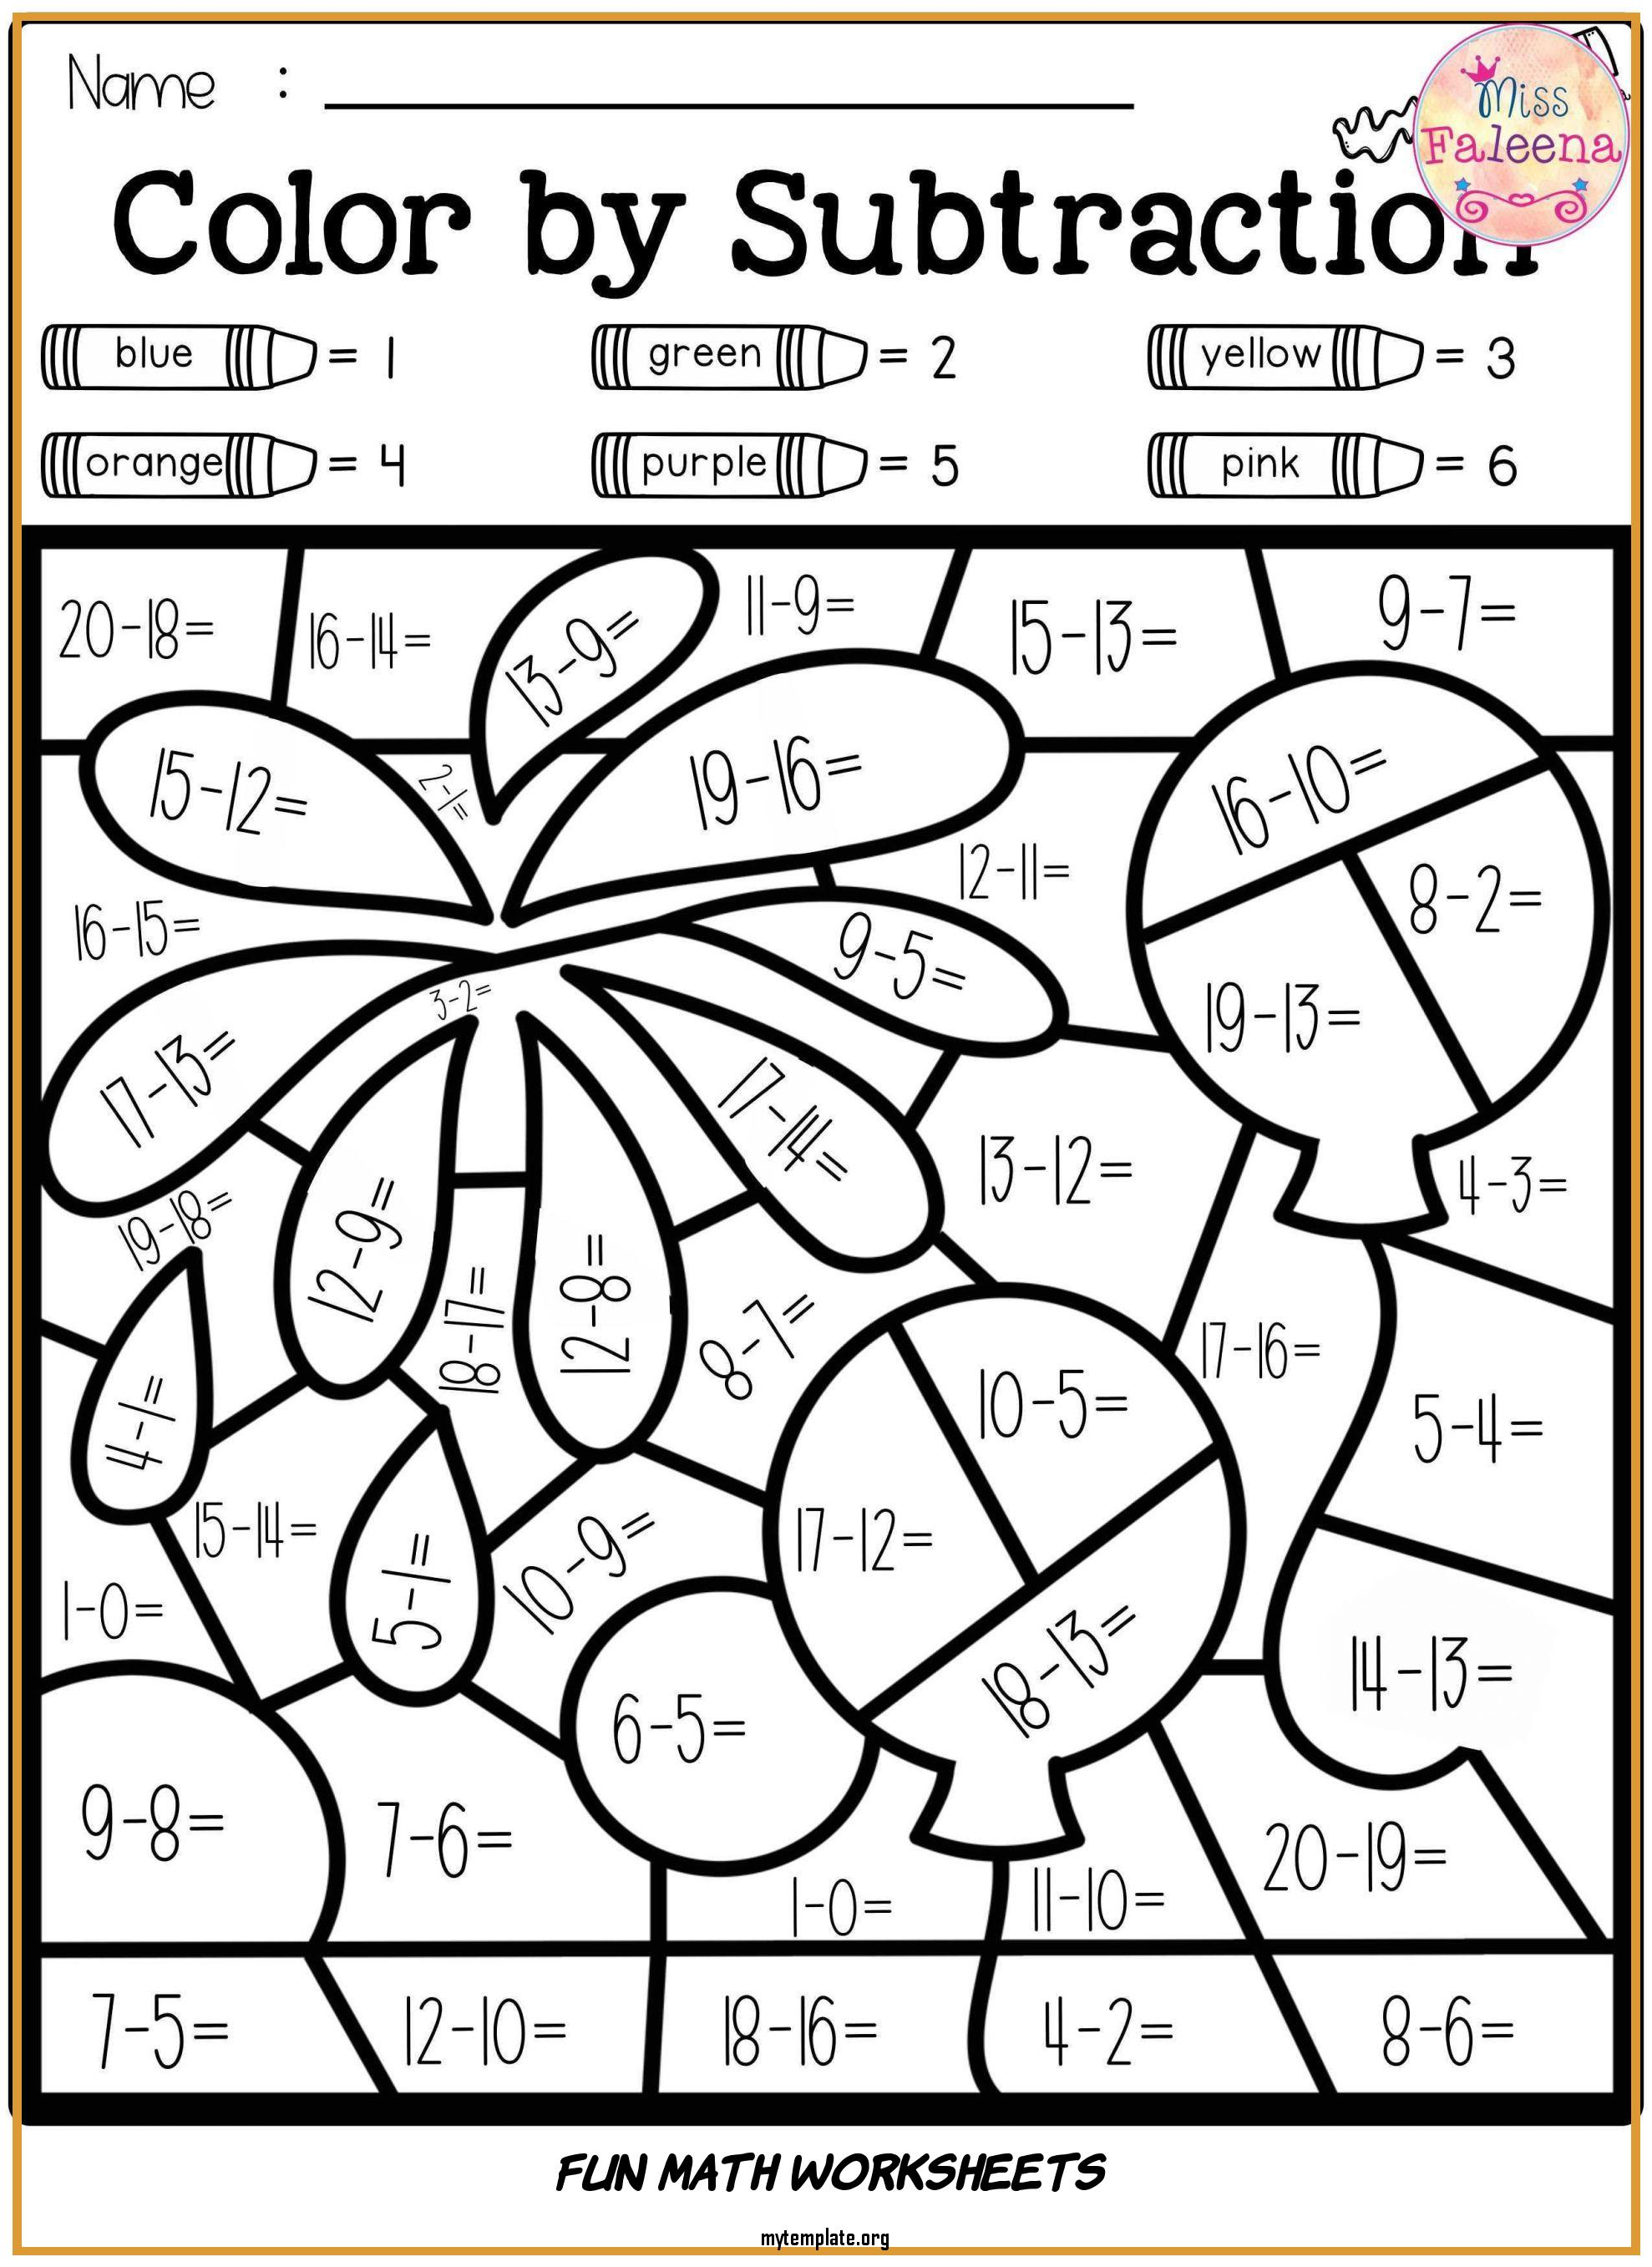 7 Fun Math Worksheets - Free Templates [ 2560 x 1866 Pixel ]